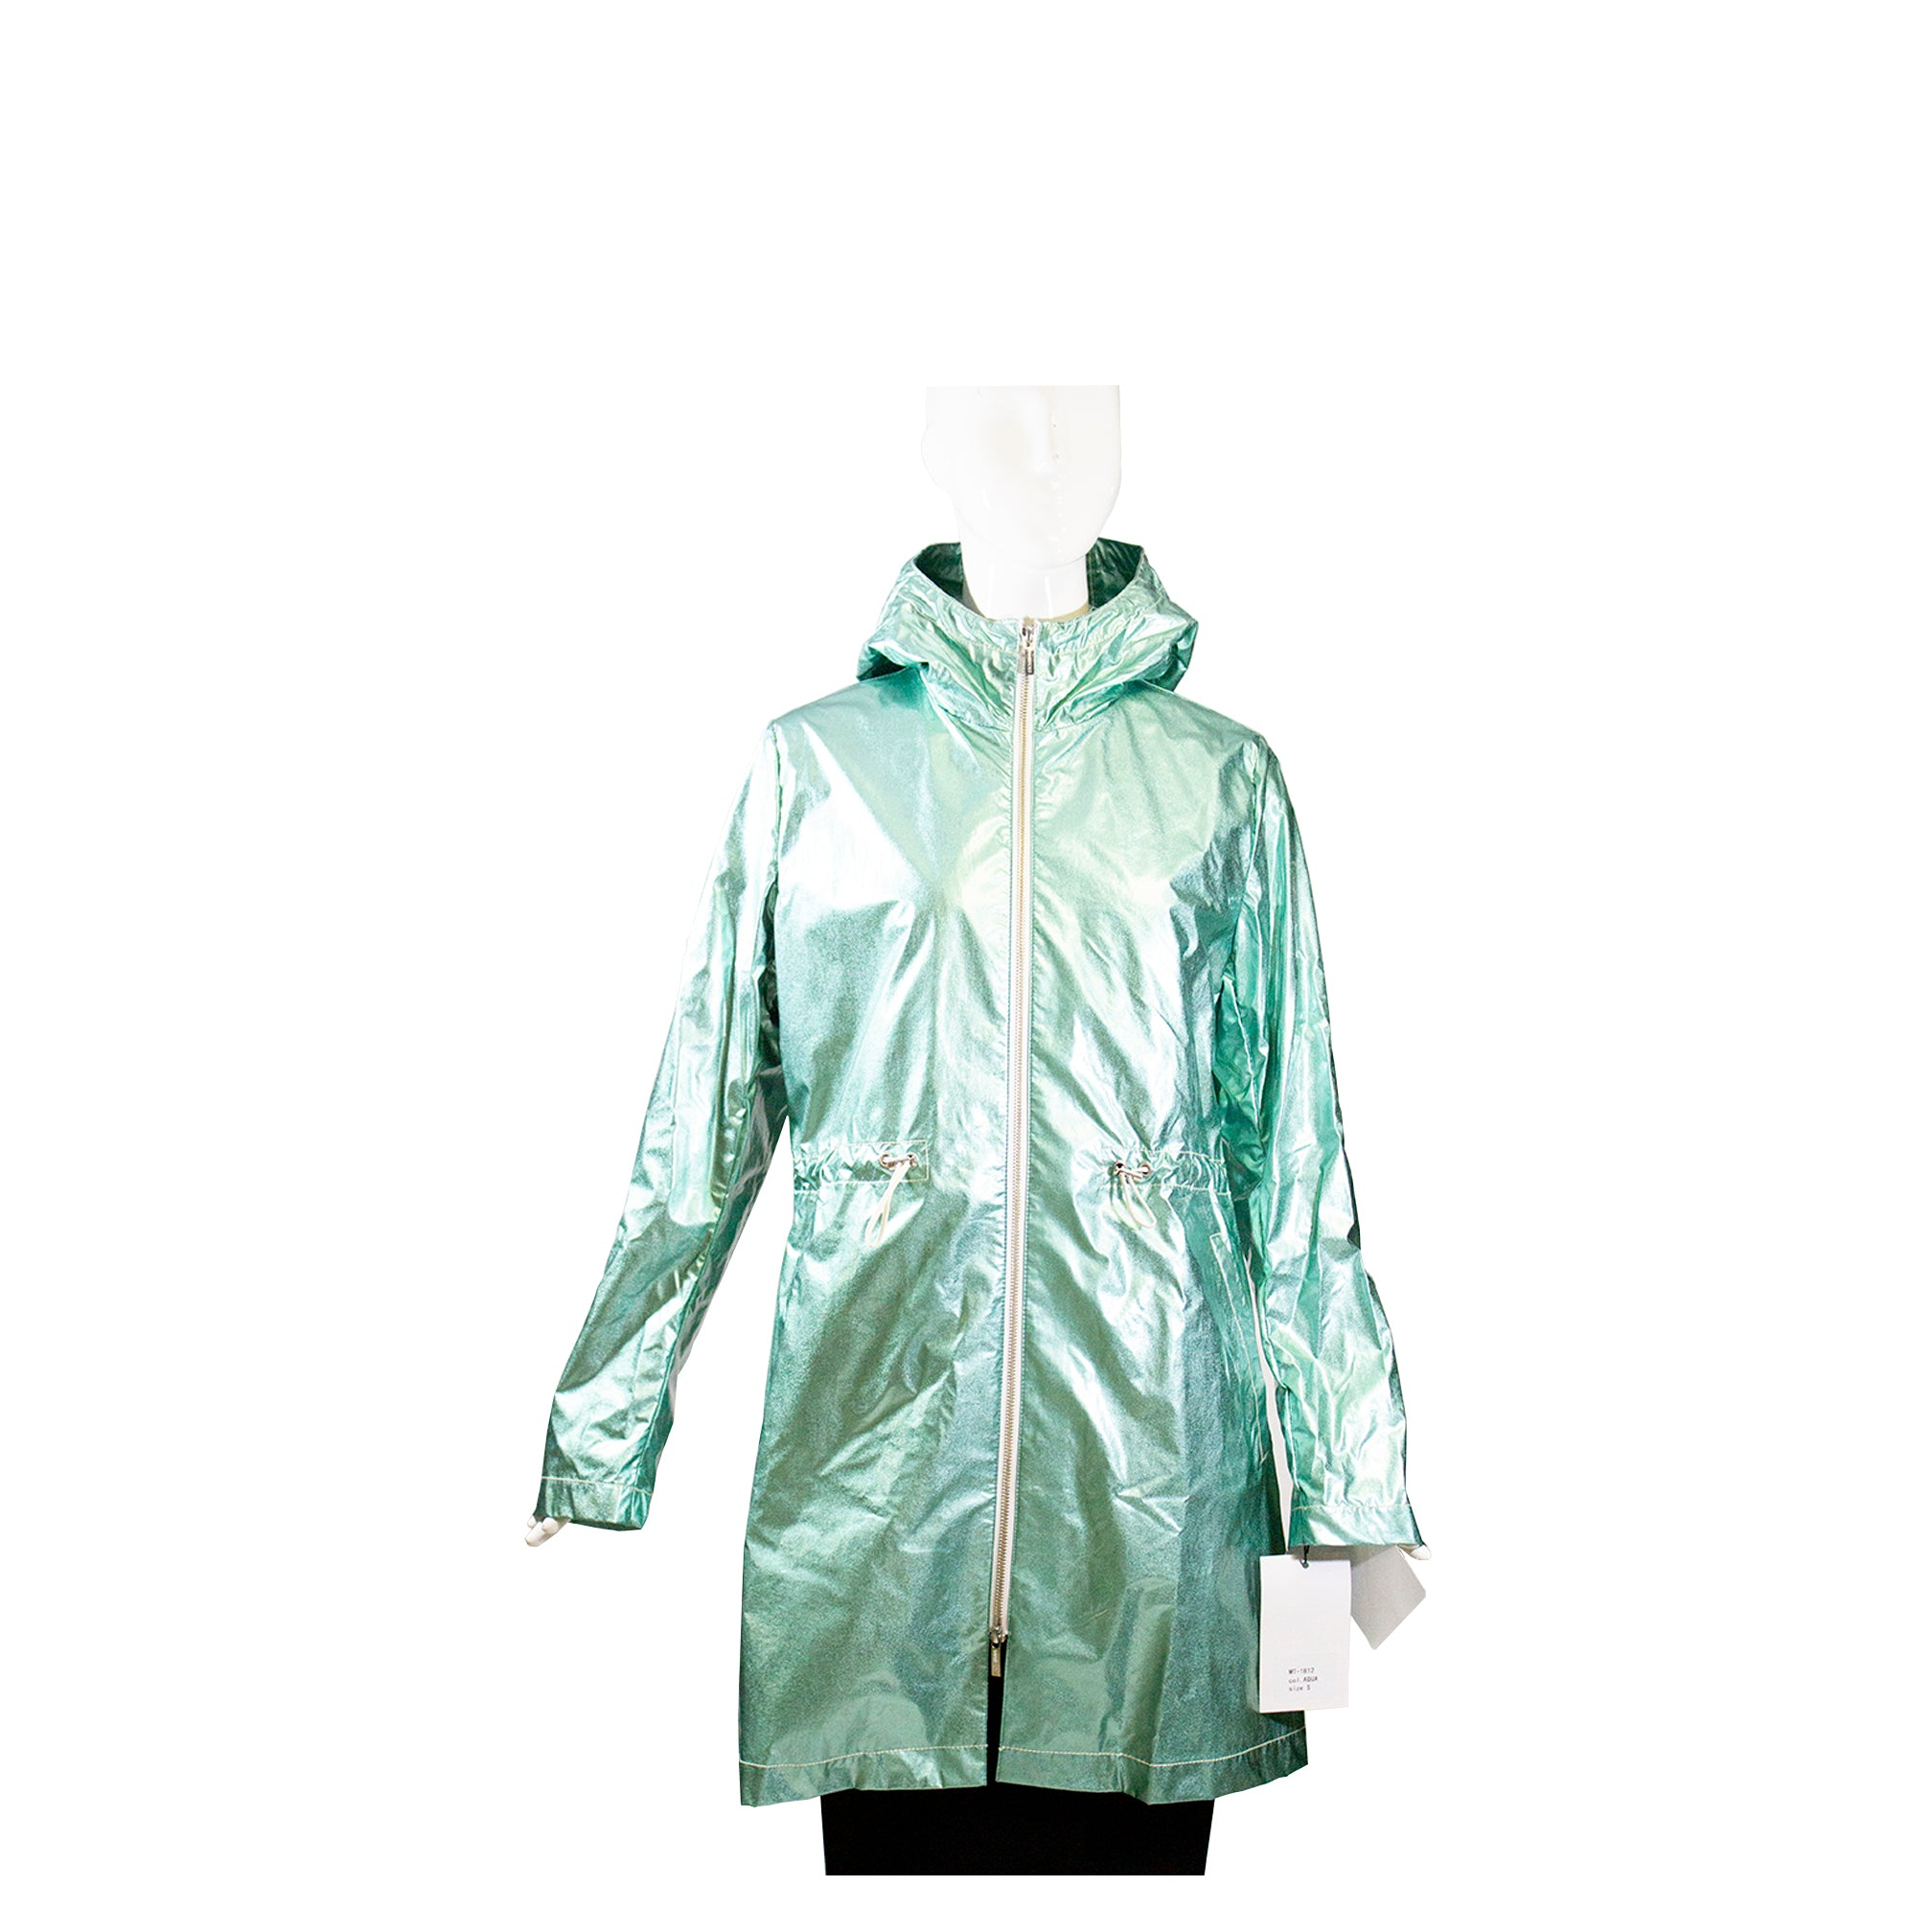 JANE POST S19 Metallic Aqua Contrast Zip Hooded Rain Parka Trench Jacket S $475